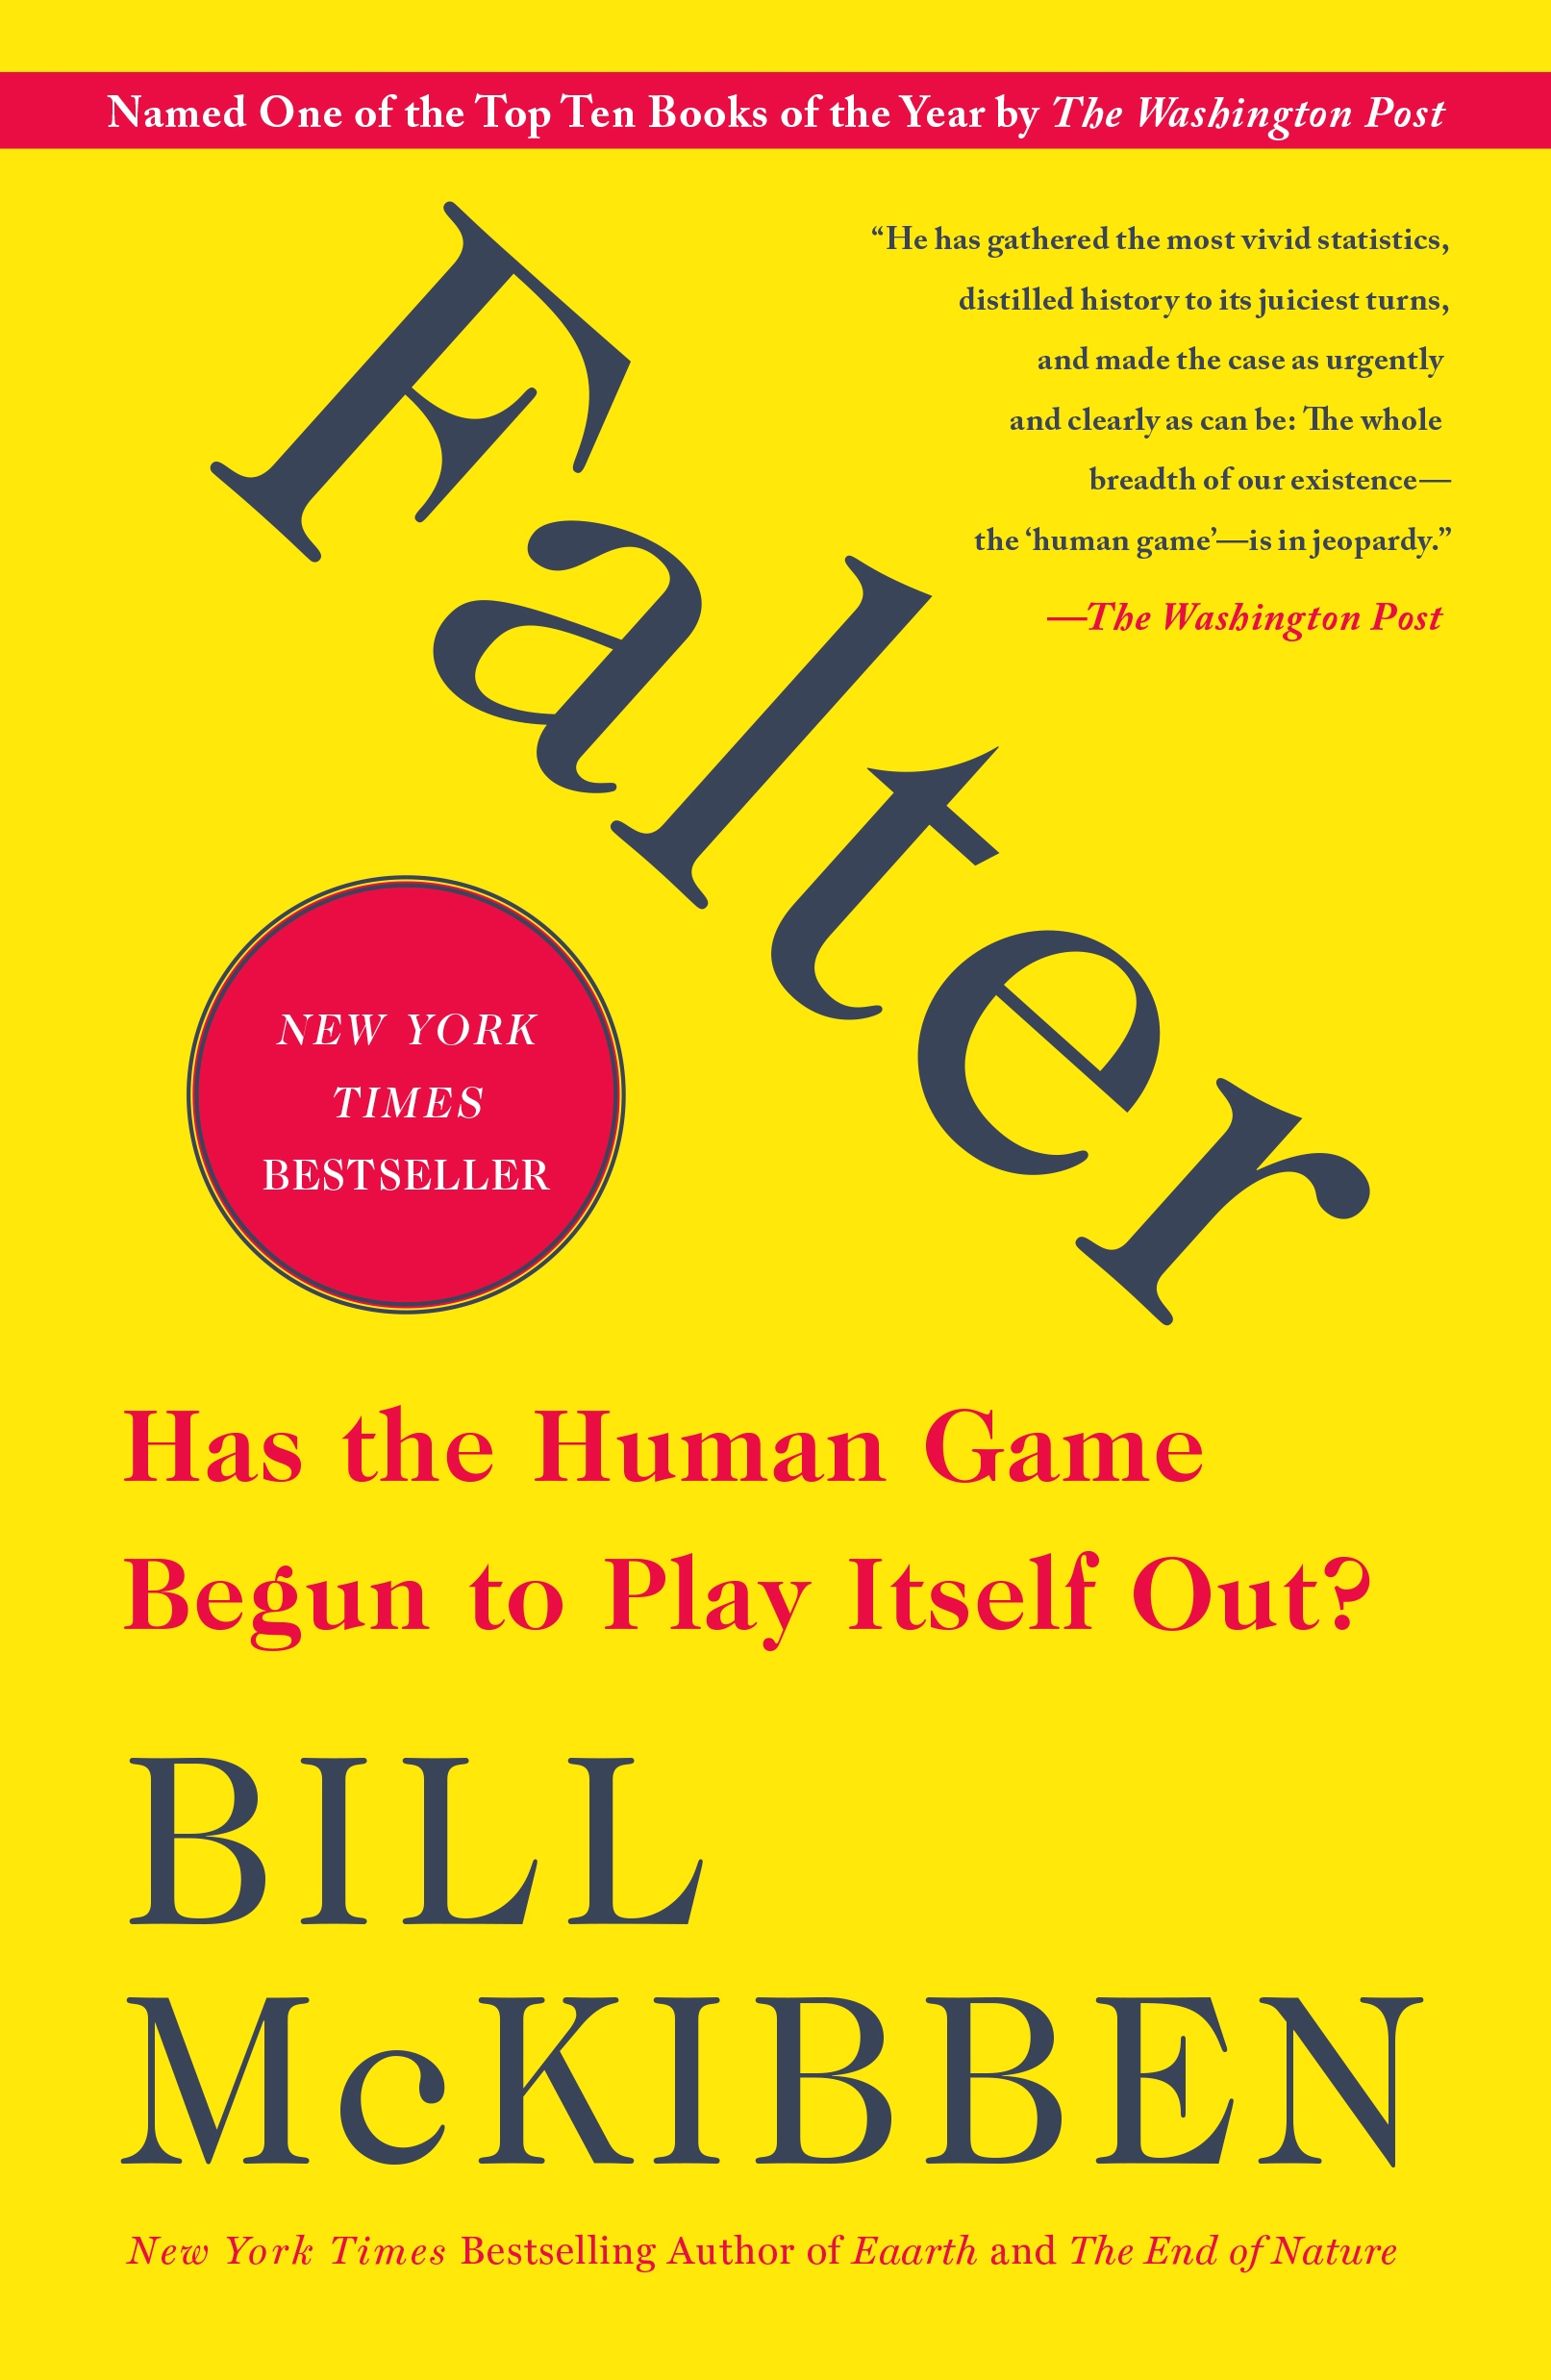 Falter Has the Human Game Begun to Play Itself Out?